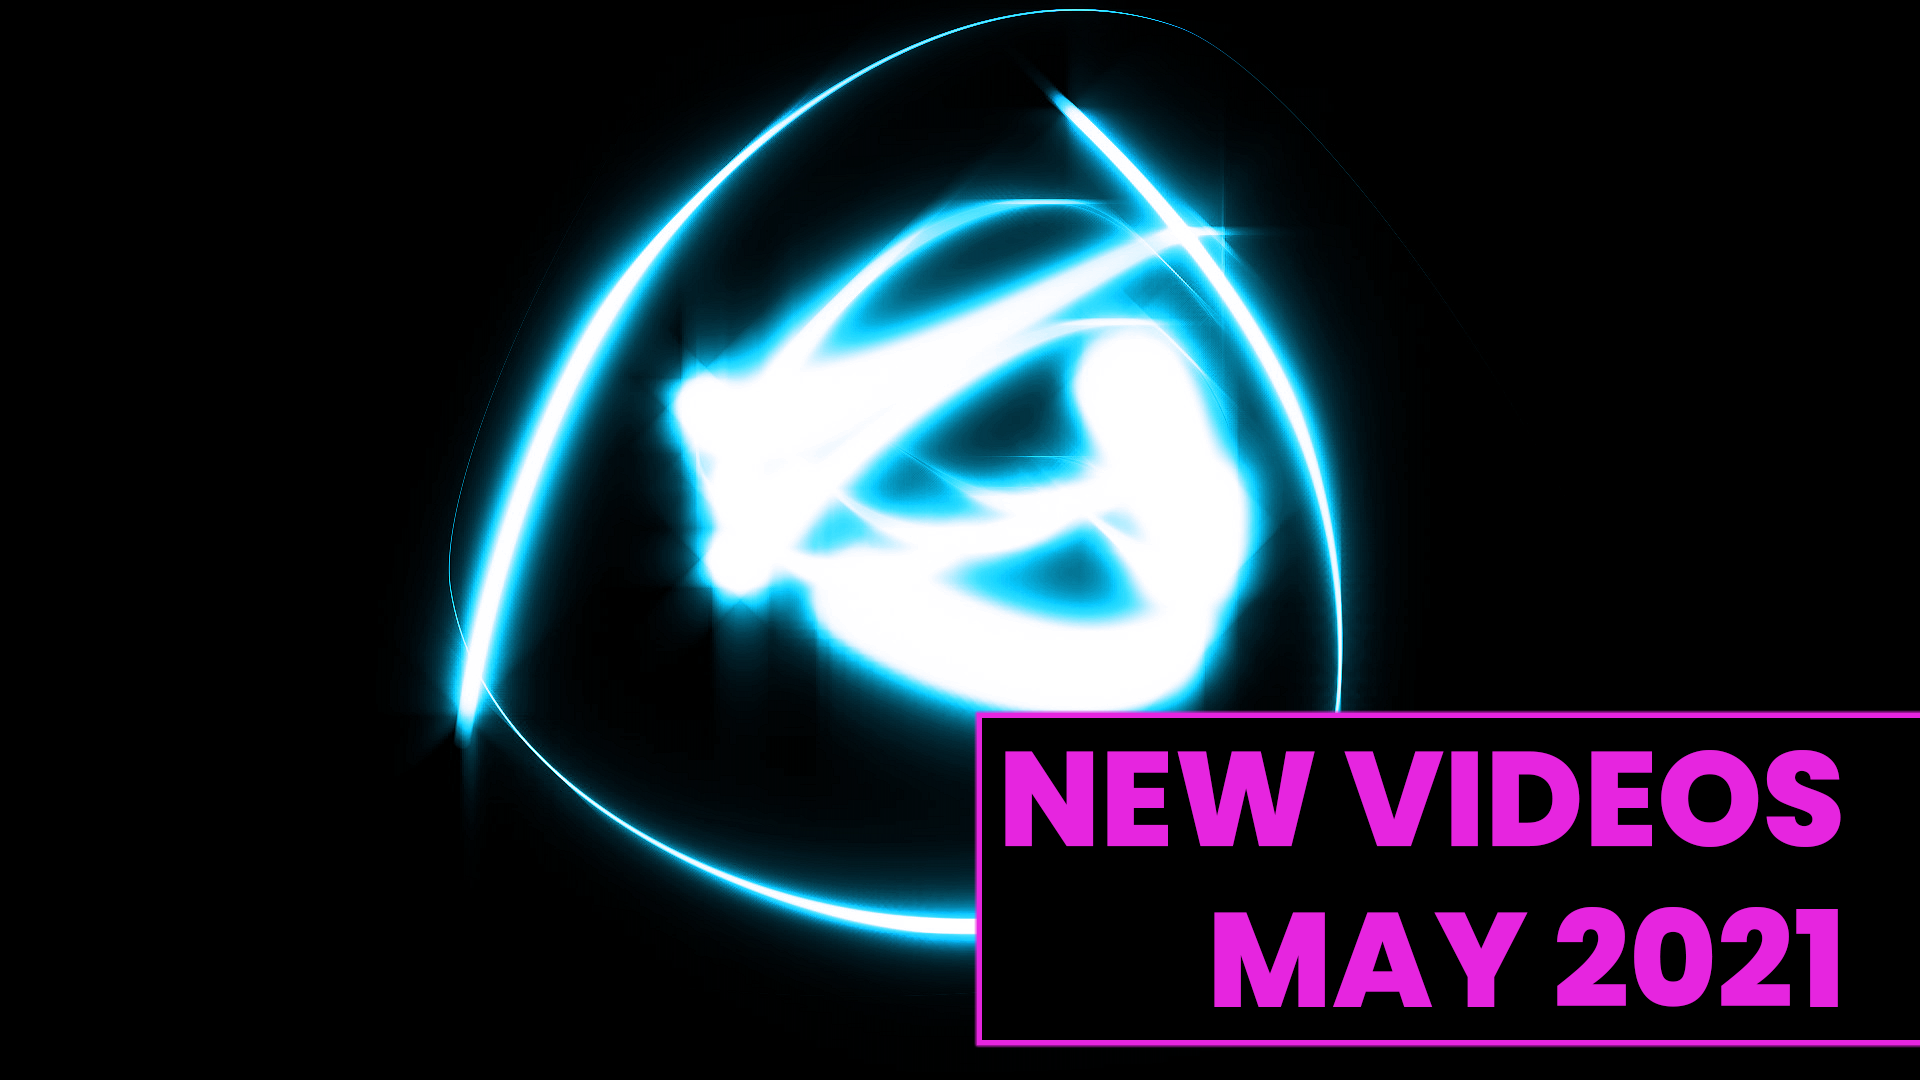 Deep Space and Render Tech - 16 New Videos for May 2021